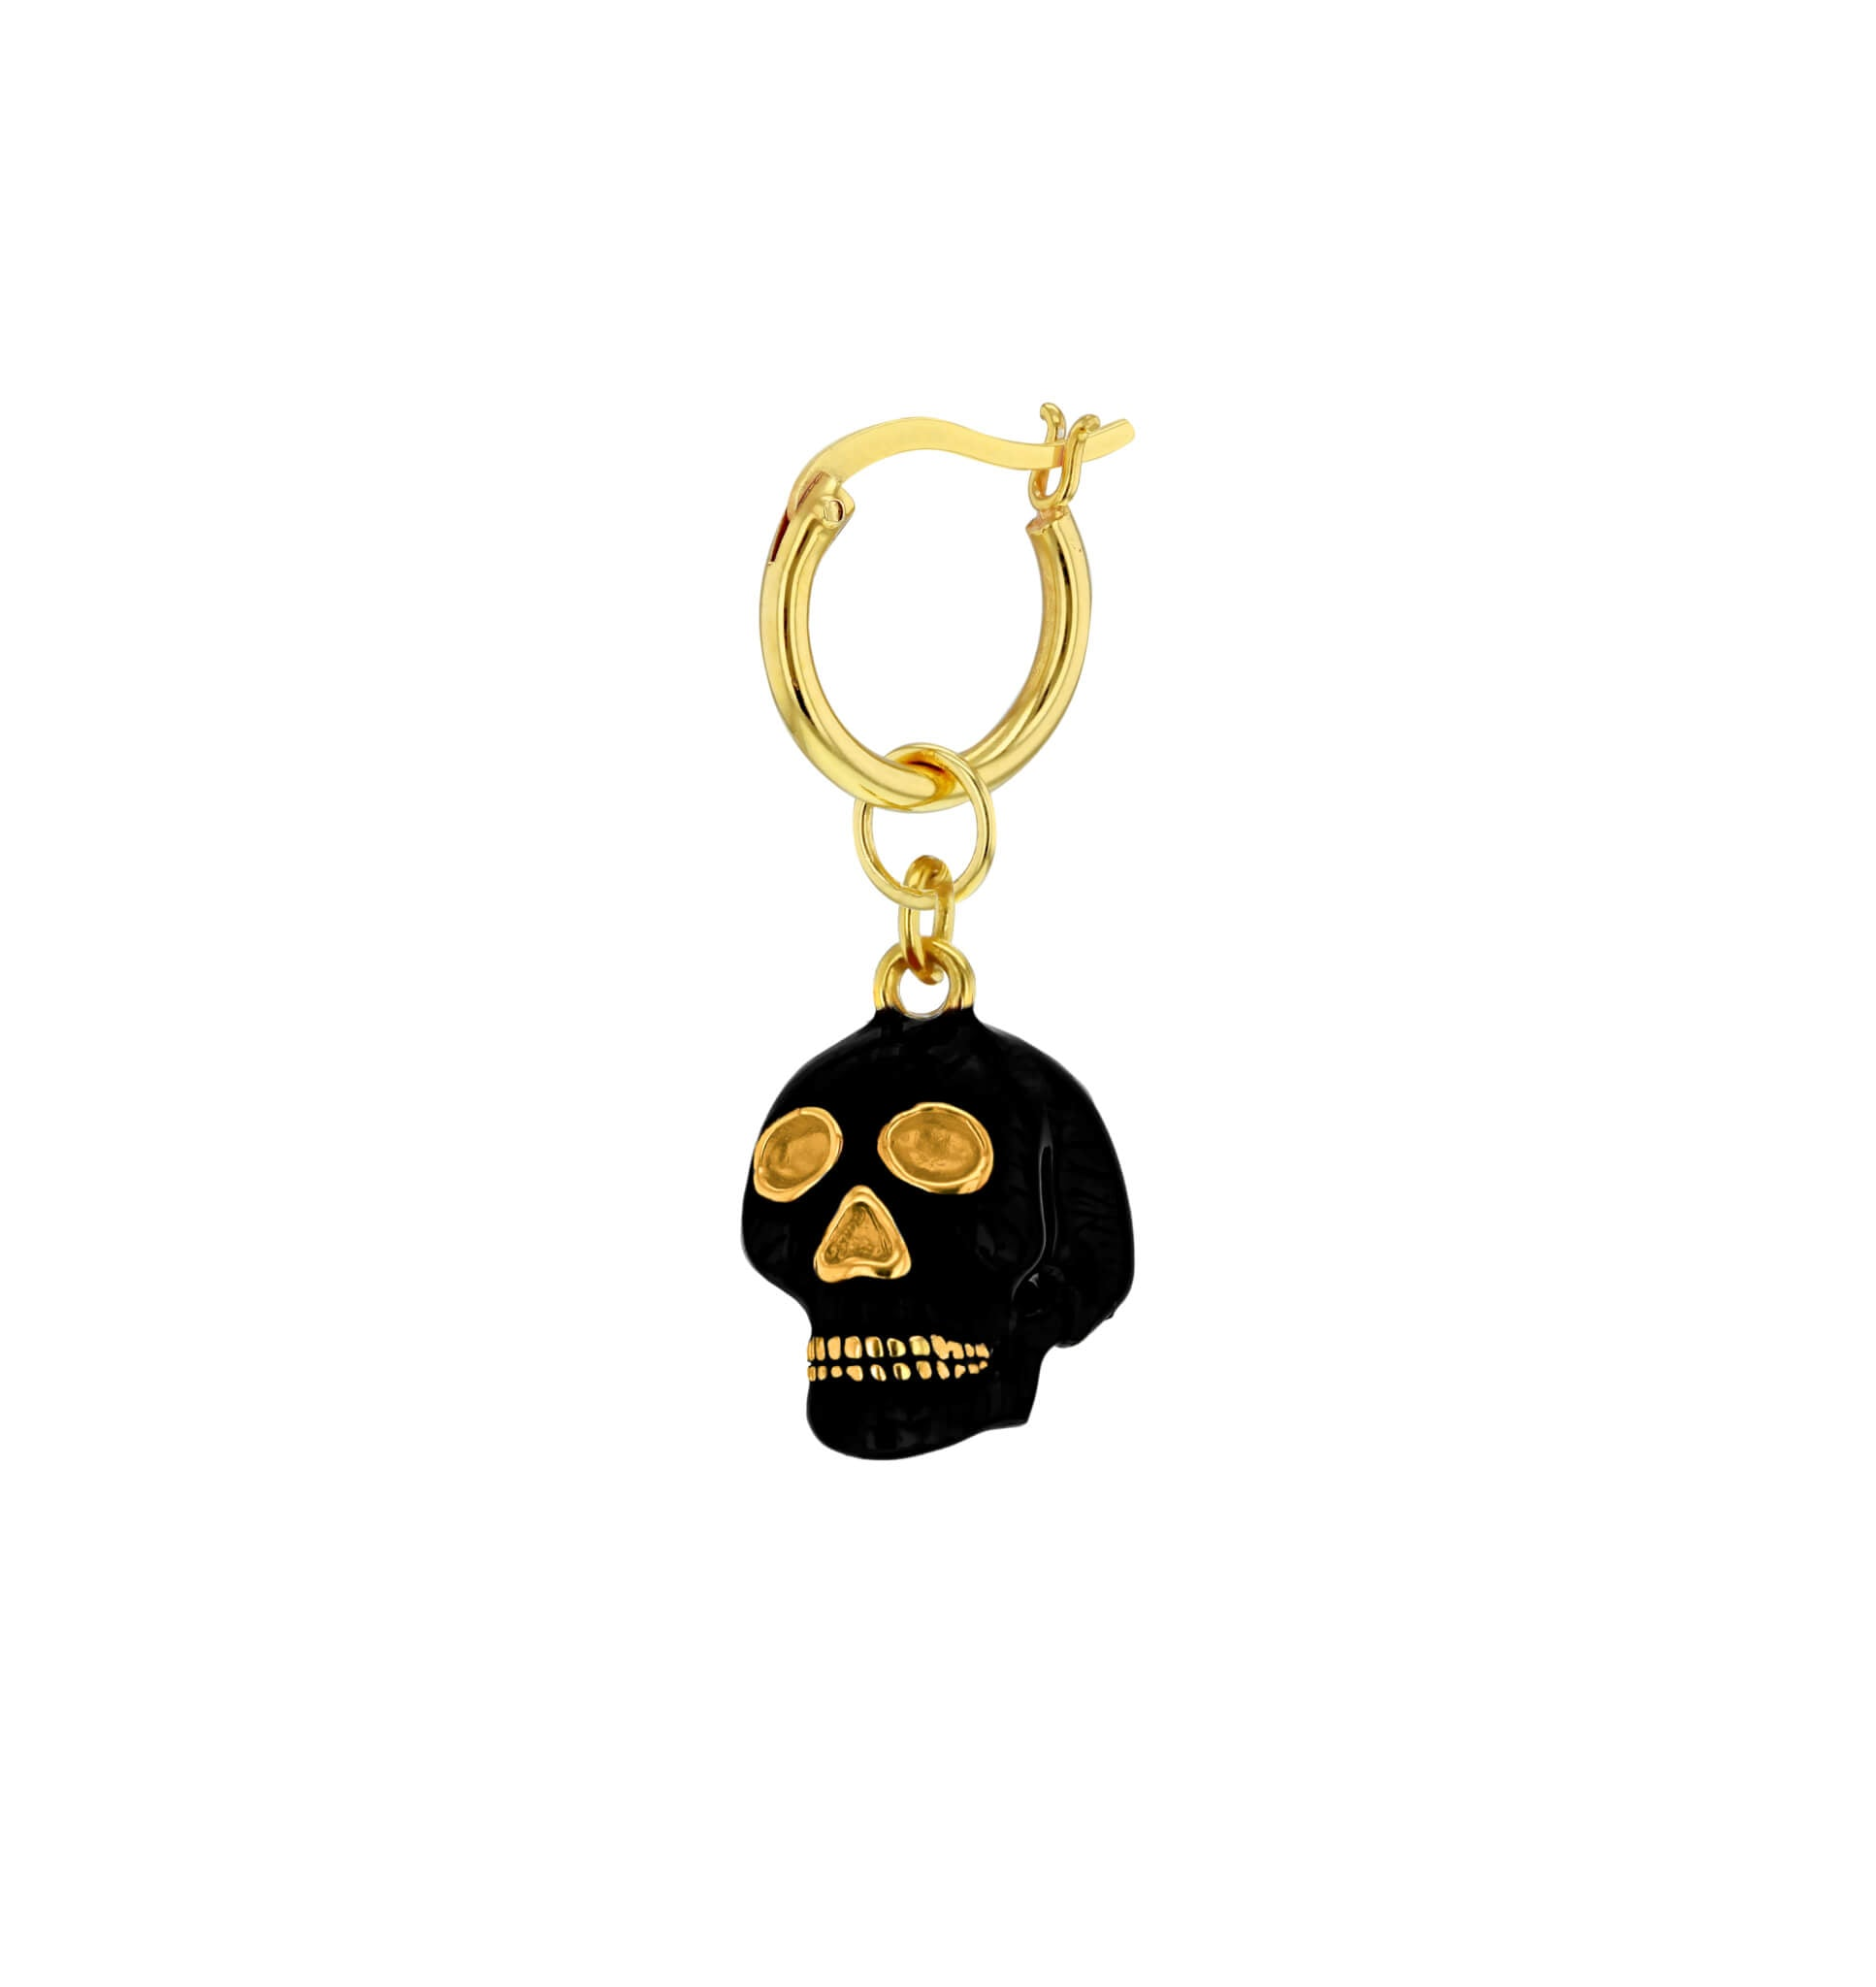 Skull Hoop Earring in Black and Gold